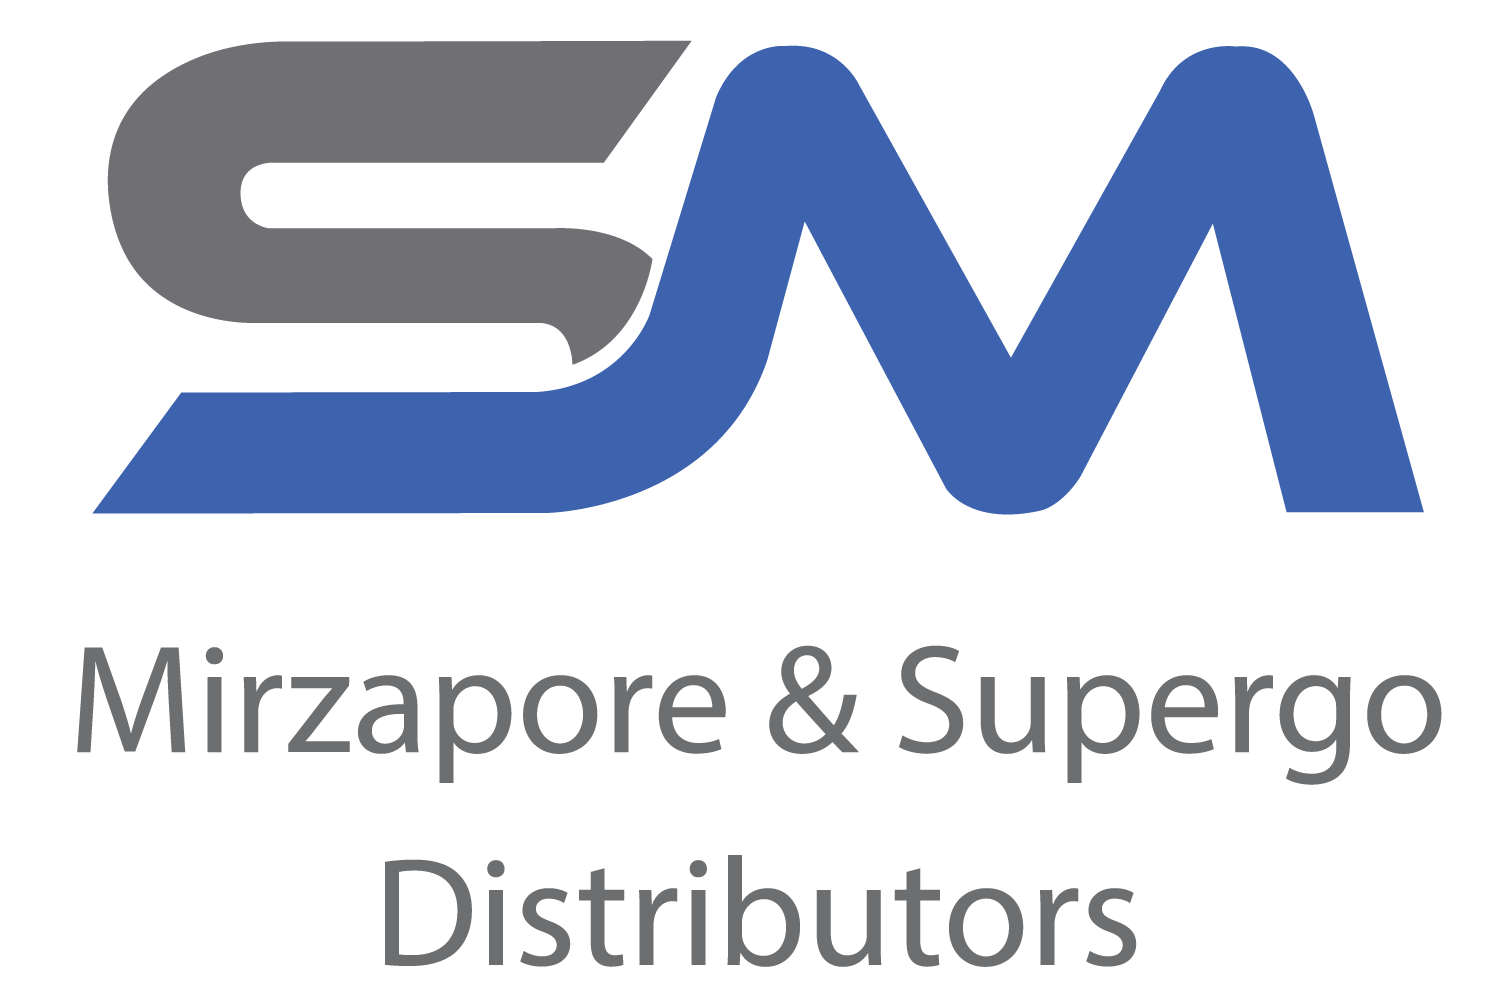 Mirzapore and Supergo Distributors